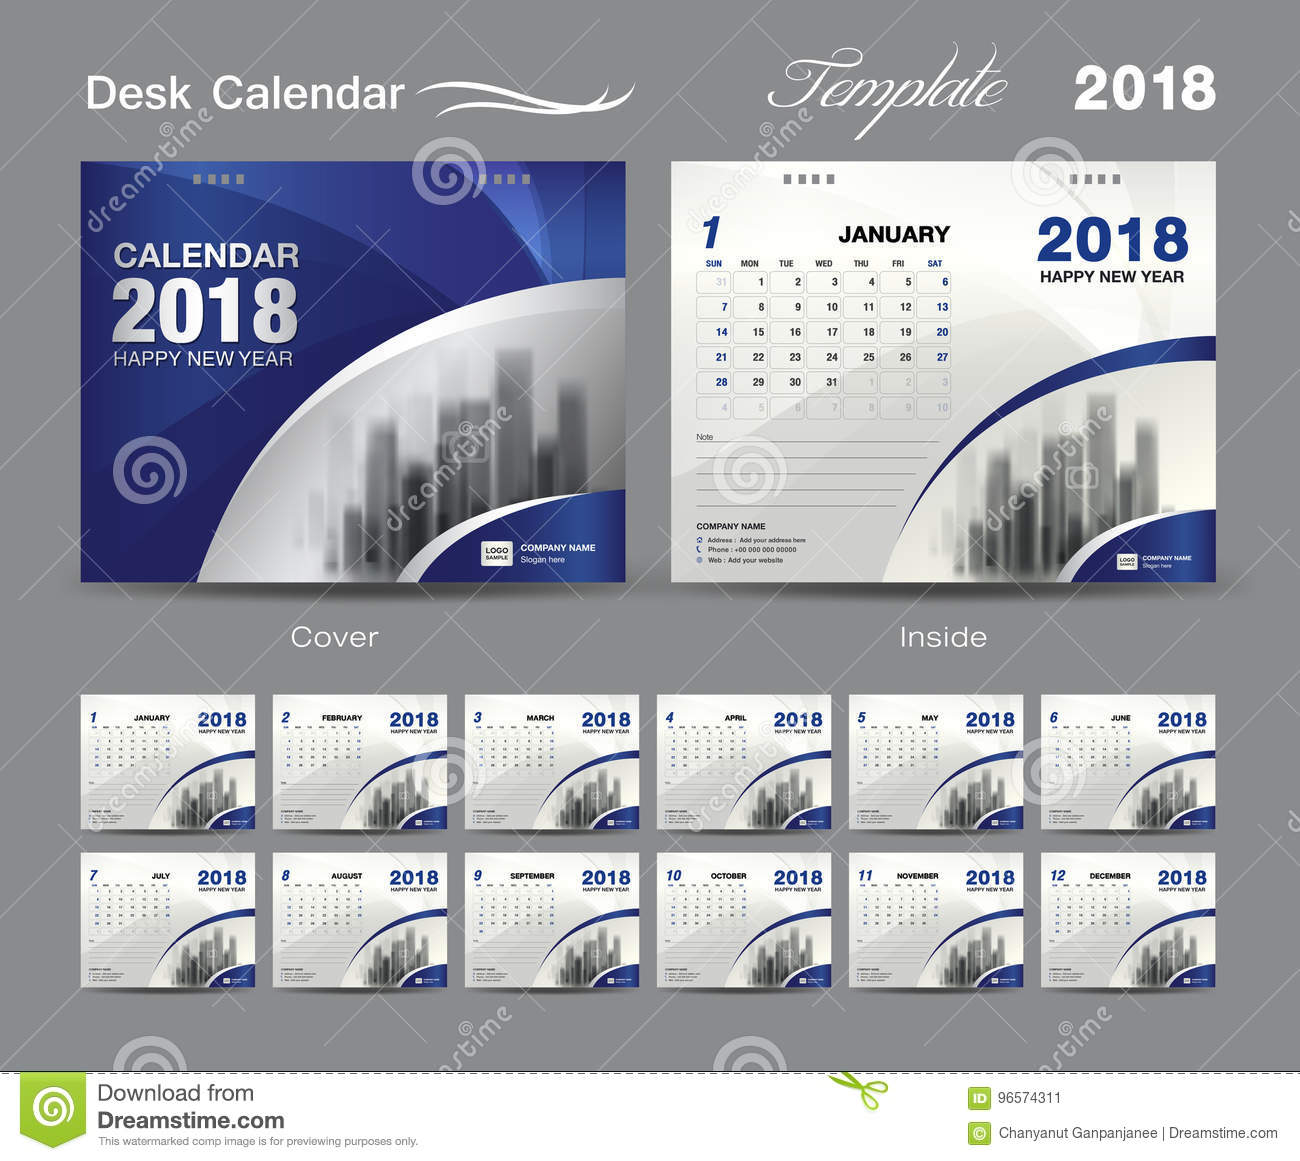 Cover Calendar Design Vector : Desk calendar template design blue cover layout